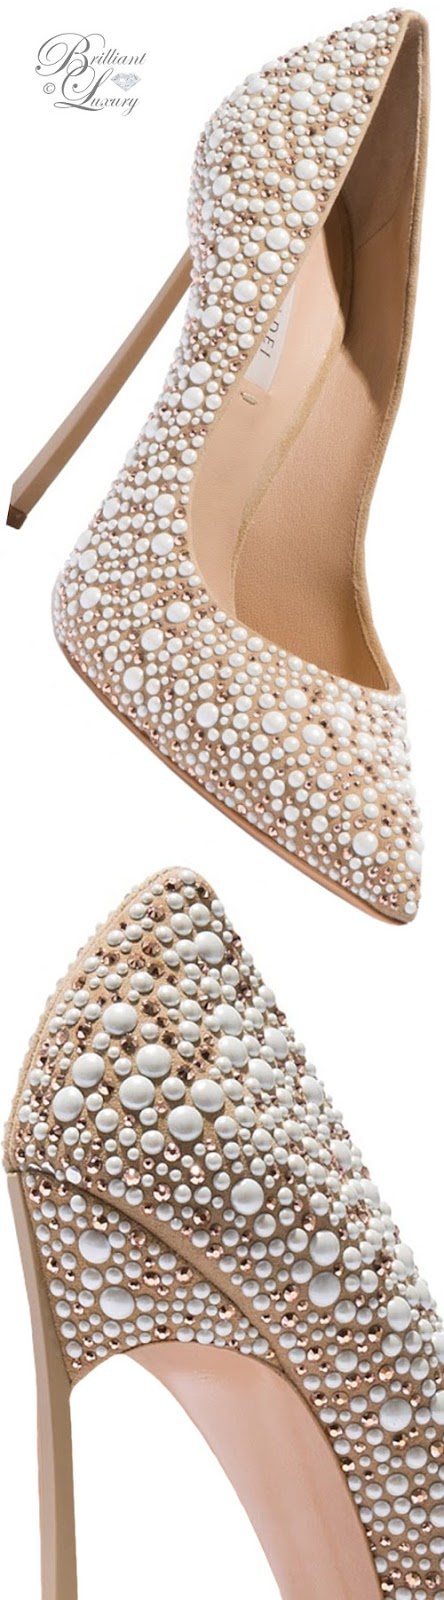 Brilliant Luxury ♦ Fall in ~ Casadei Blade pearl studded pumps